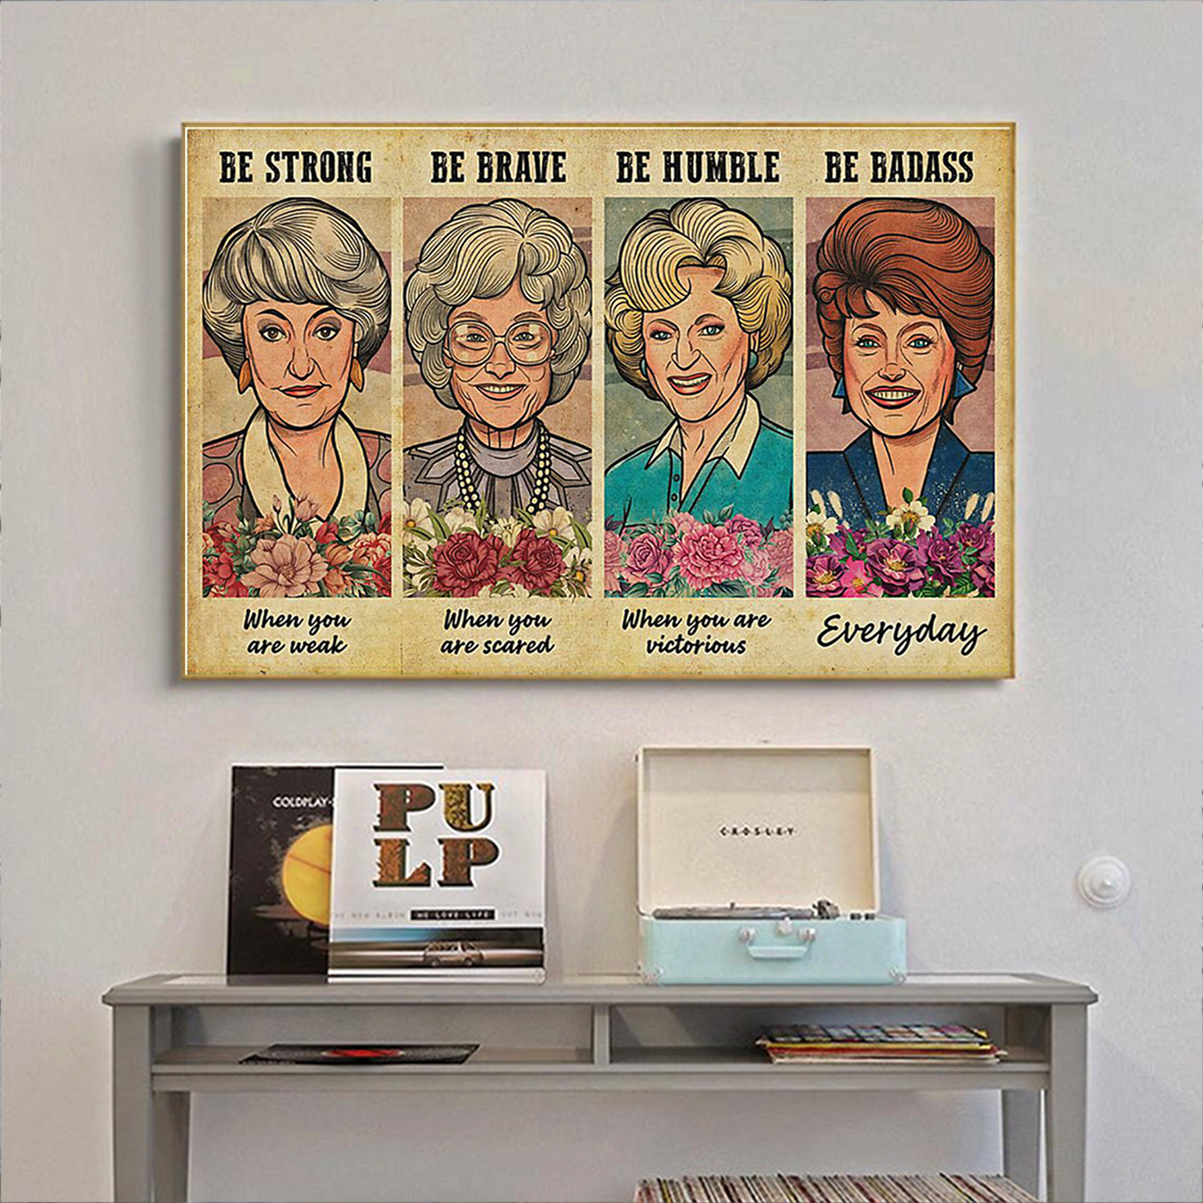 The Golden Girls be strong be brave be humble be badass poster A2